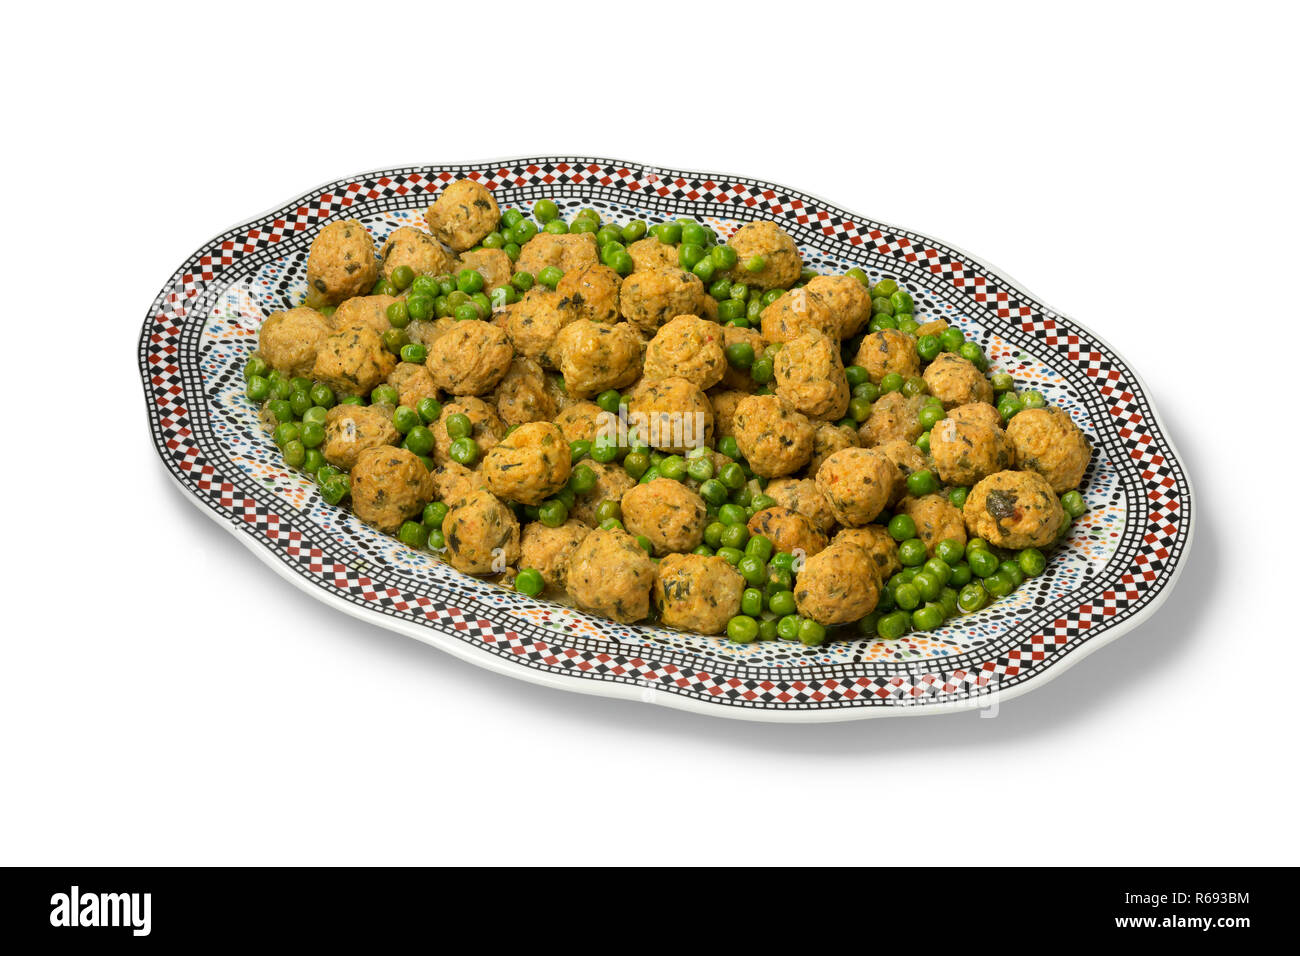 Dish with Moroccan style minced chicken balls and green peas isolated on white background - Stock Image